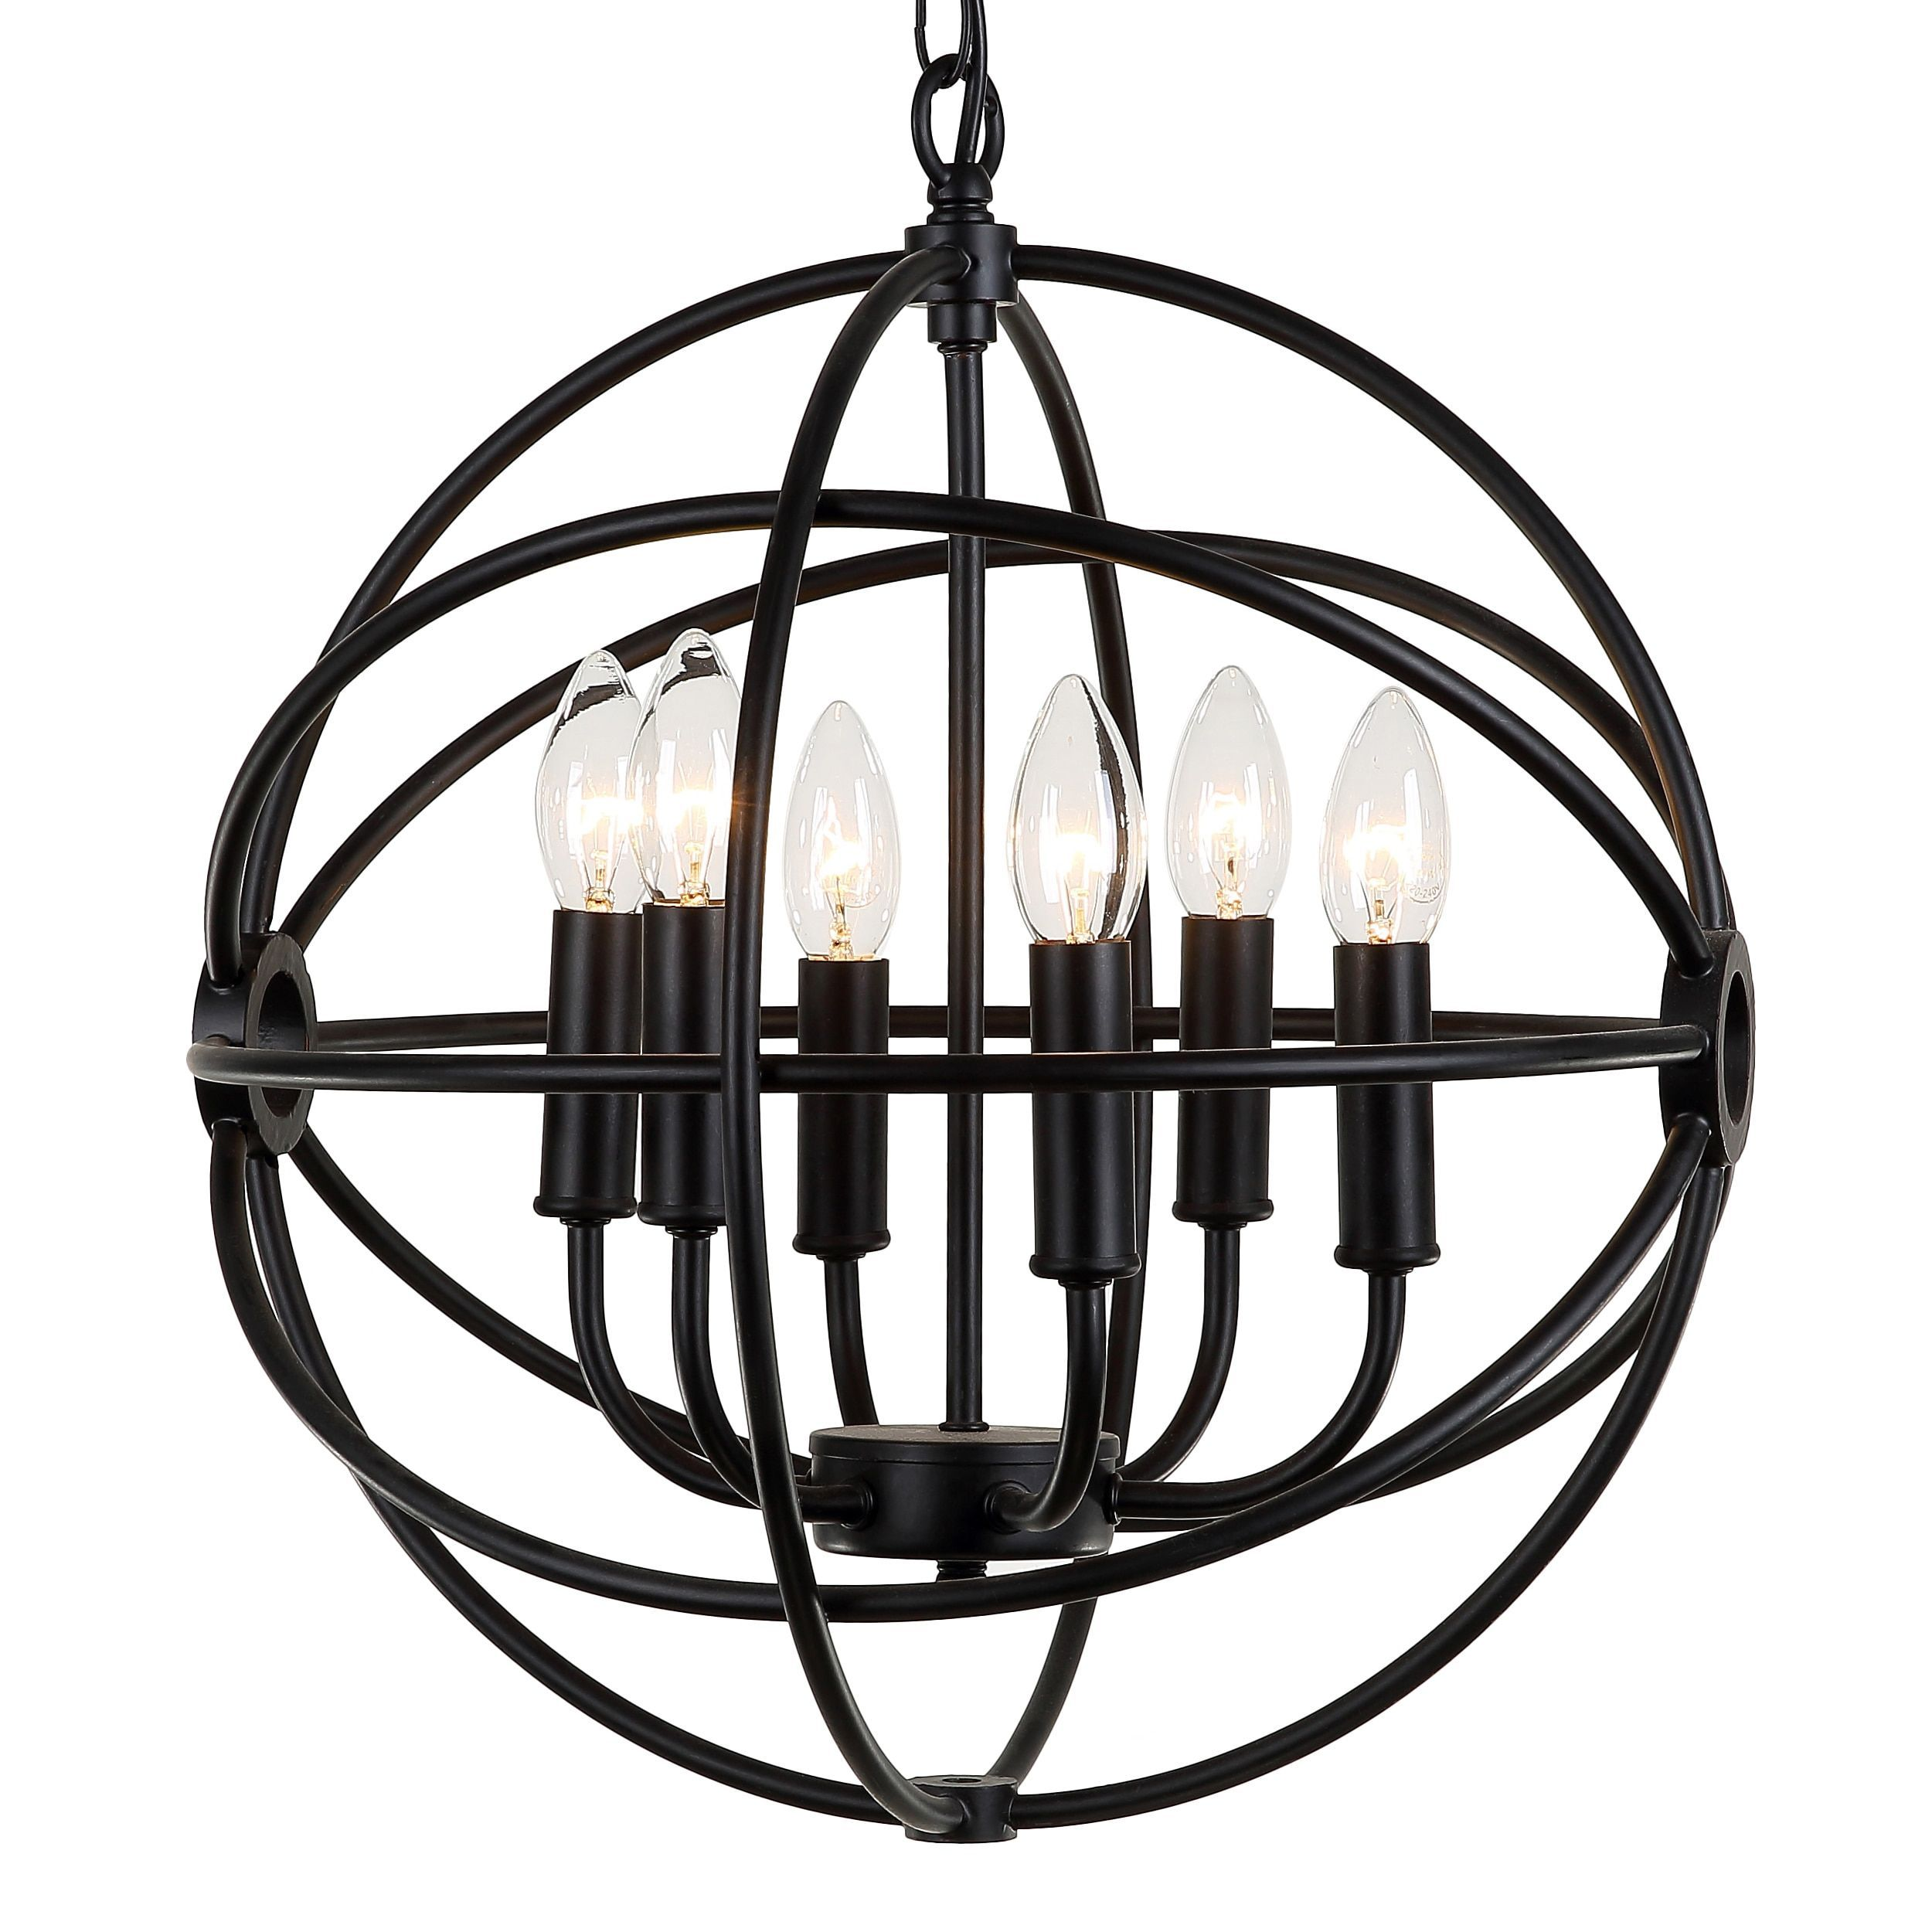 Journee Home \'Mahin\' 20 in Bulb Included Hard Wired Iron Pendant ...